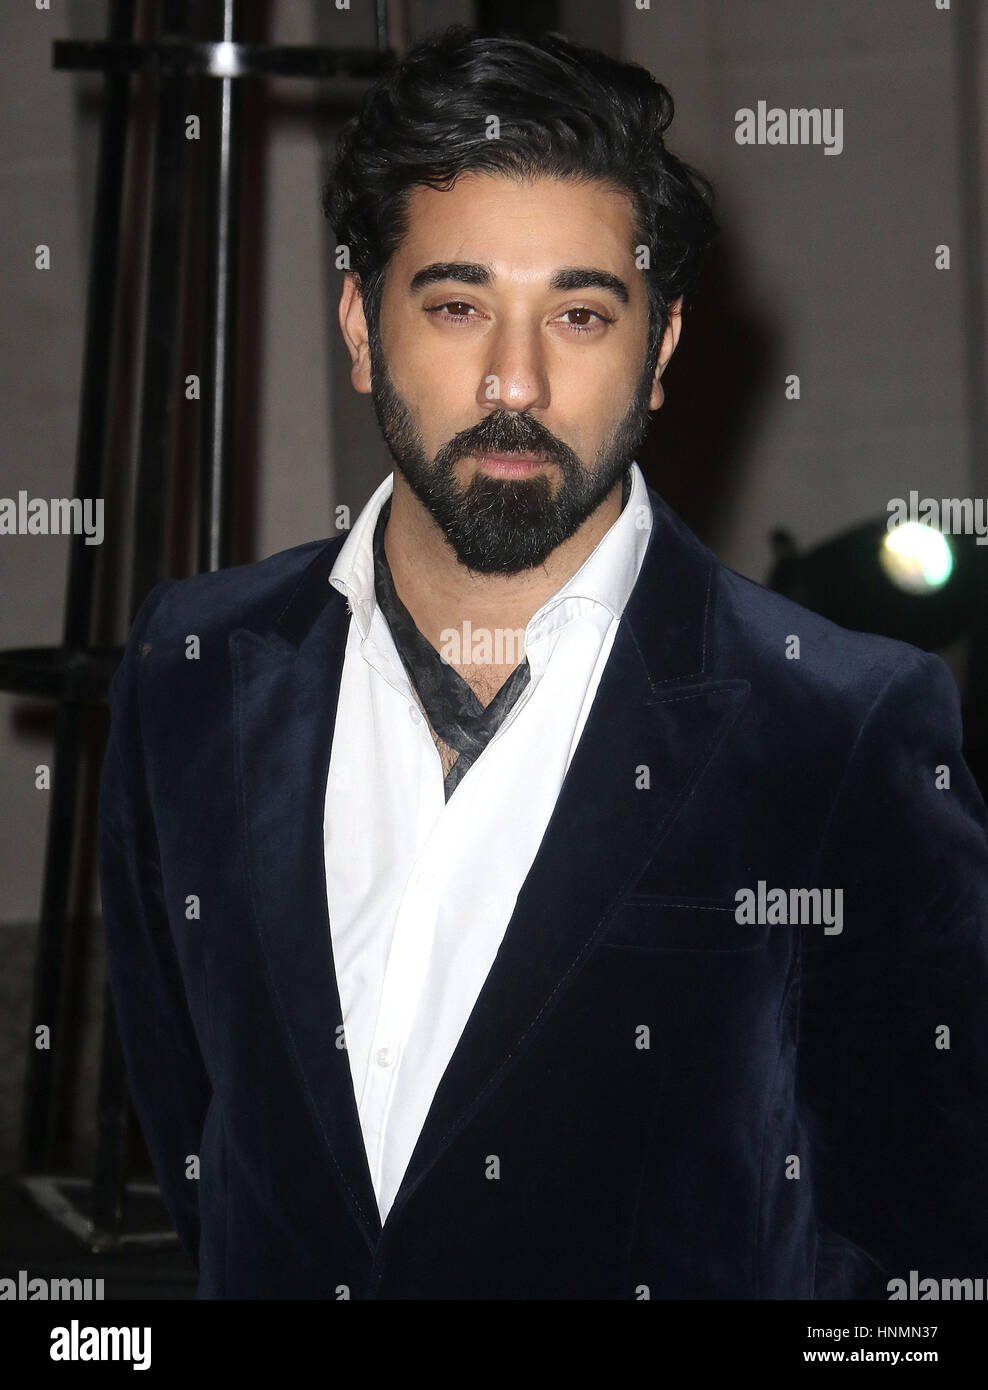 Feb 02, 2017  - Ray Panthaki attending The British Asian Trust reception and dinner, Guildhall - Red Carpet Arrivals - Stock Image